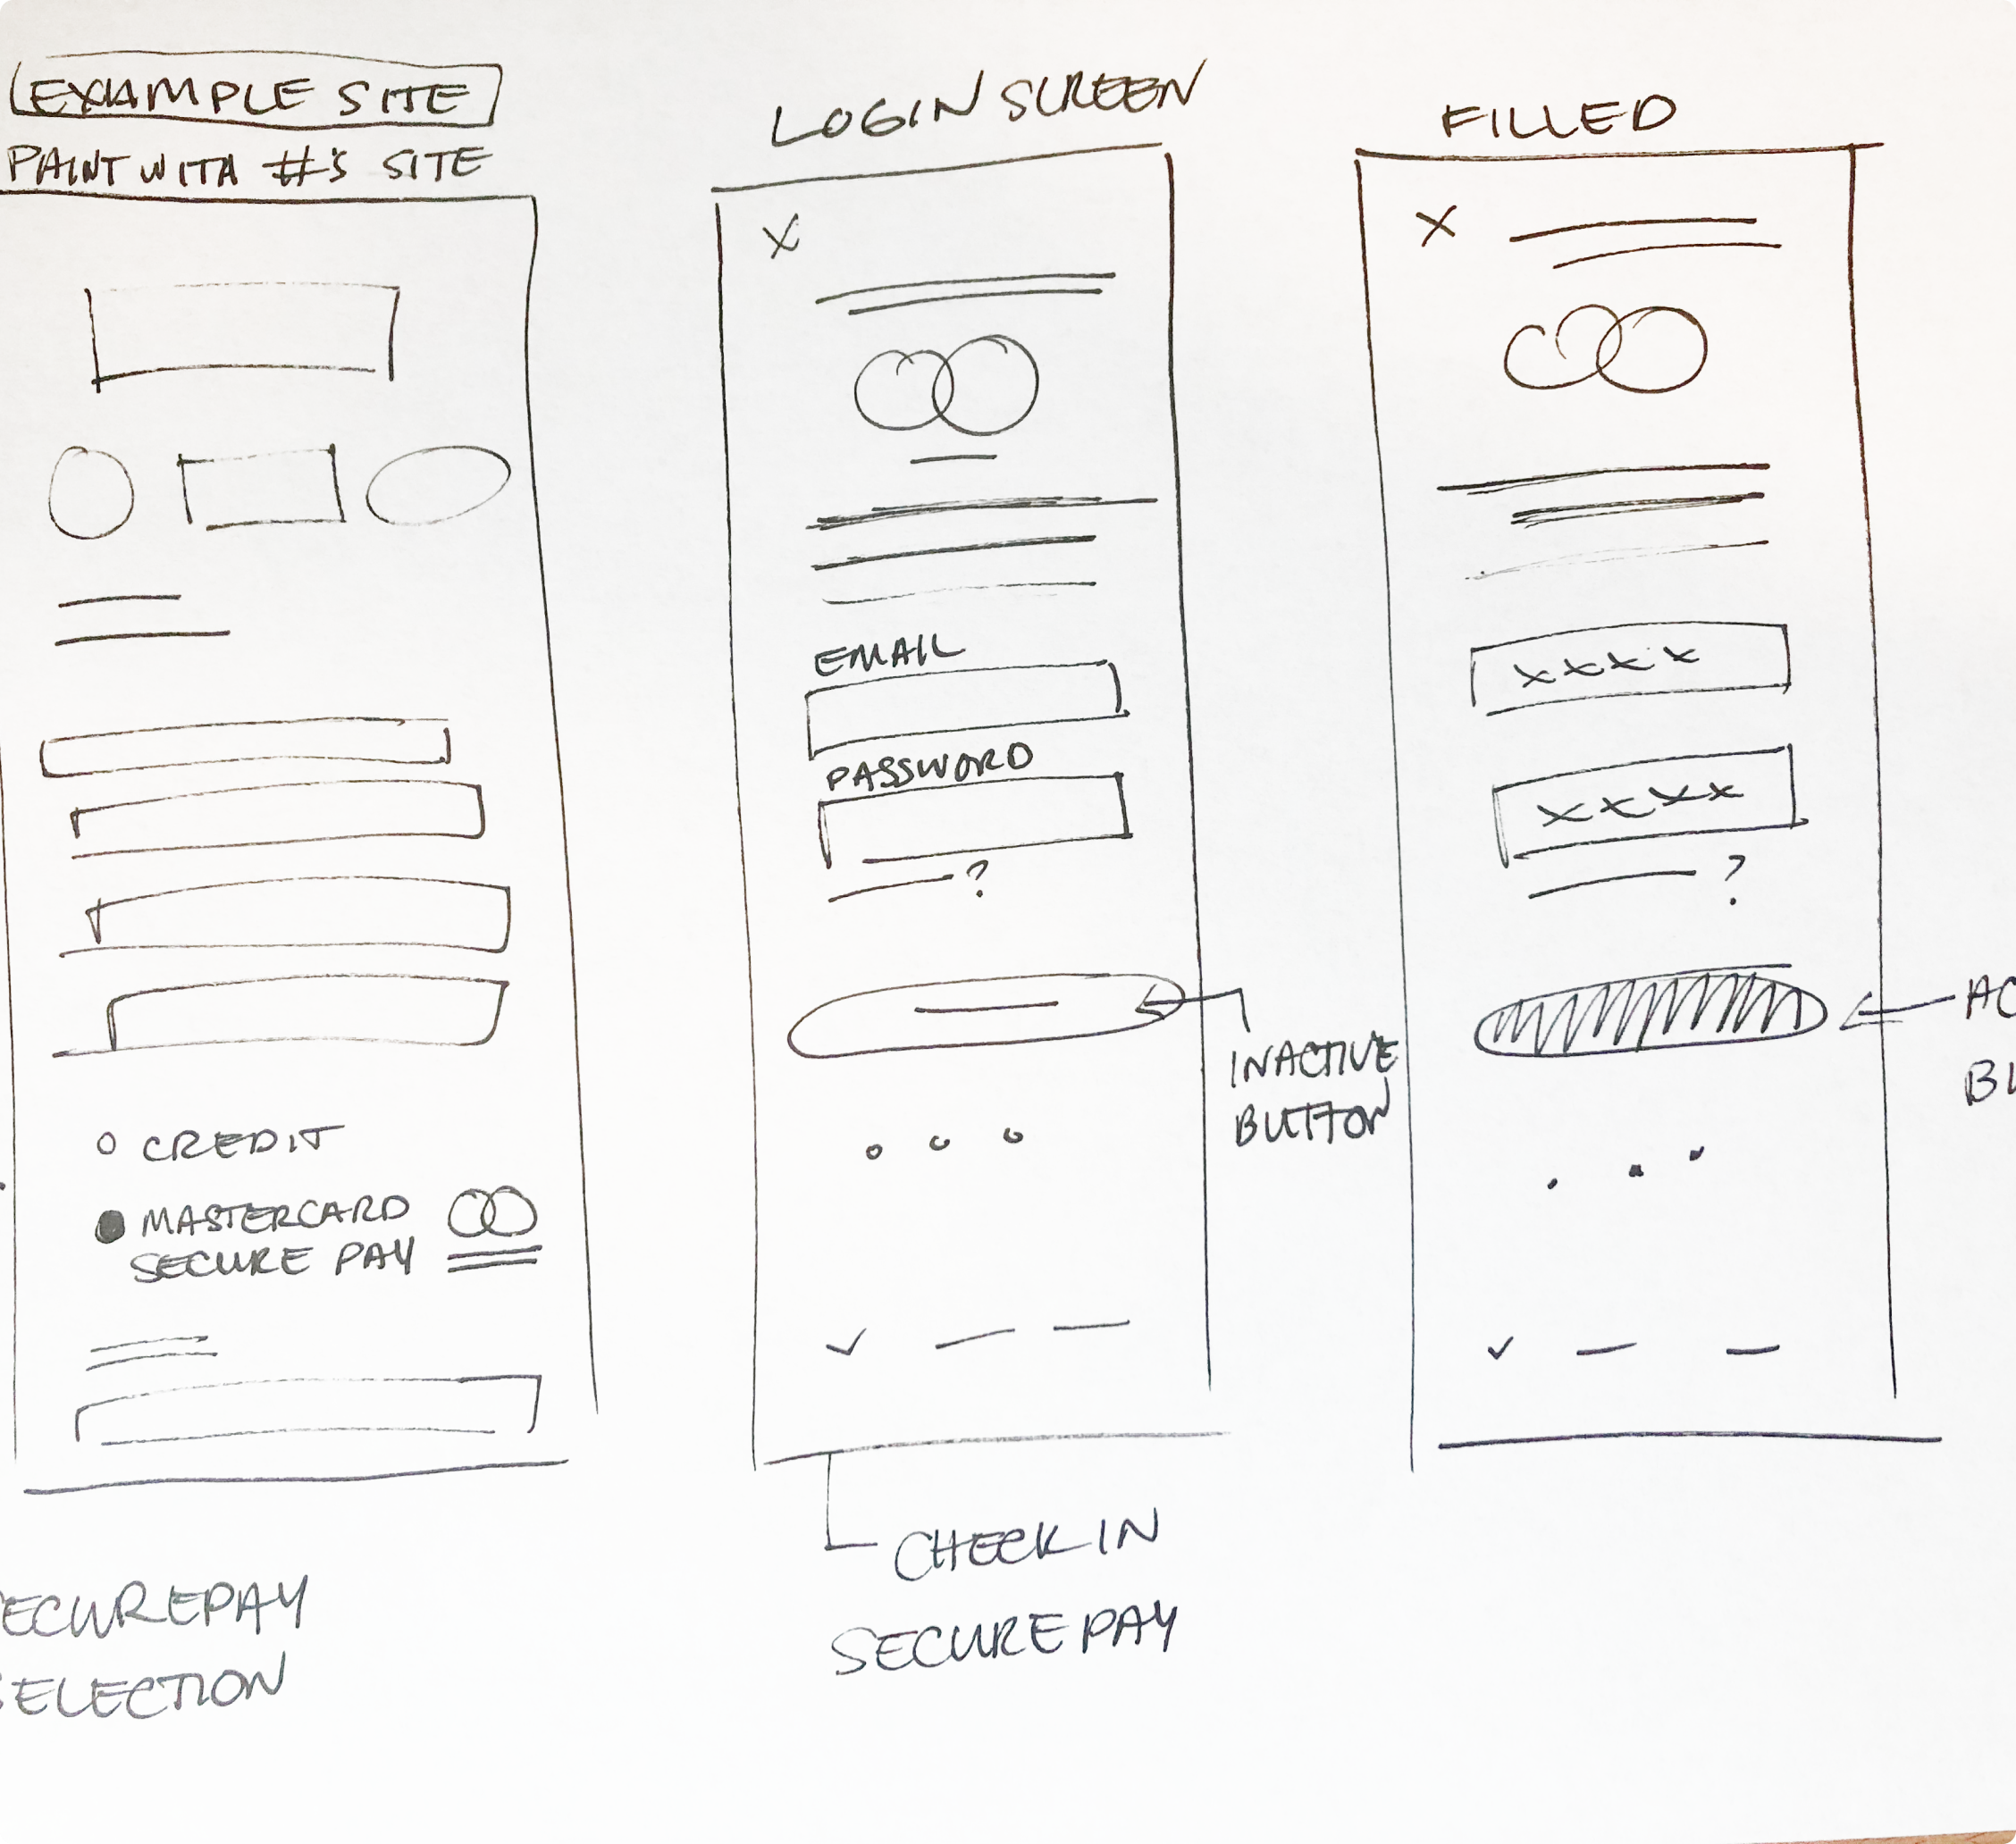 Sketches of app screens